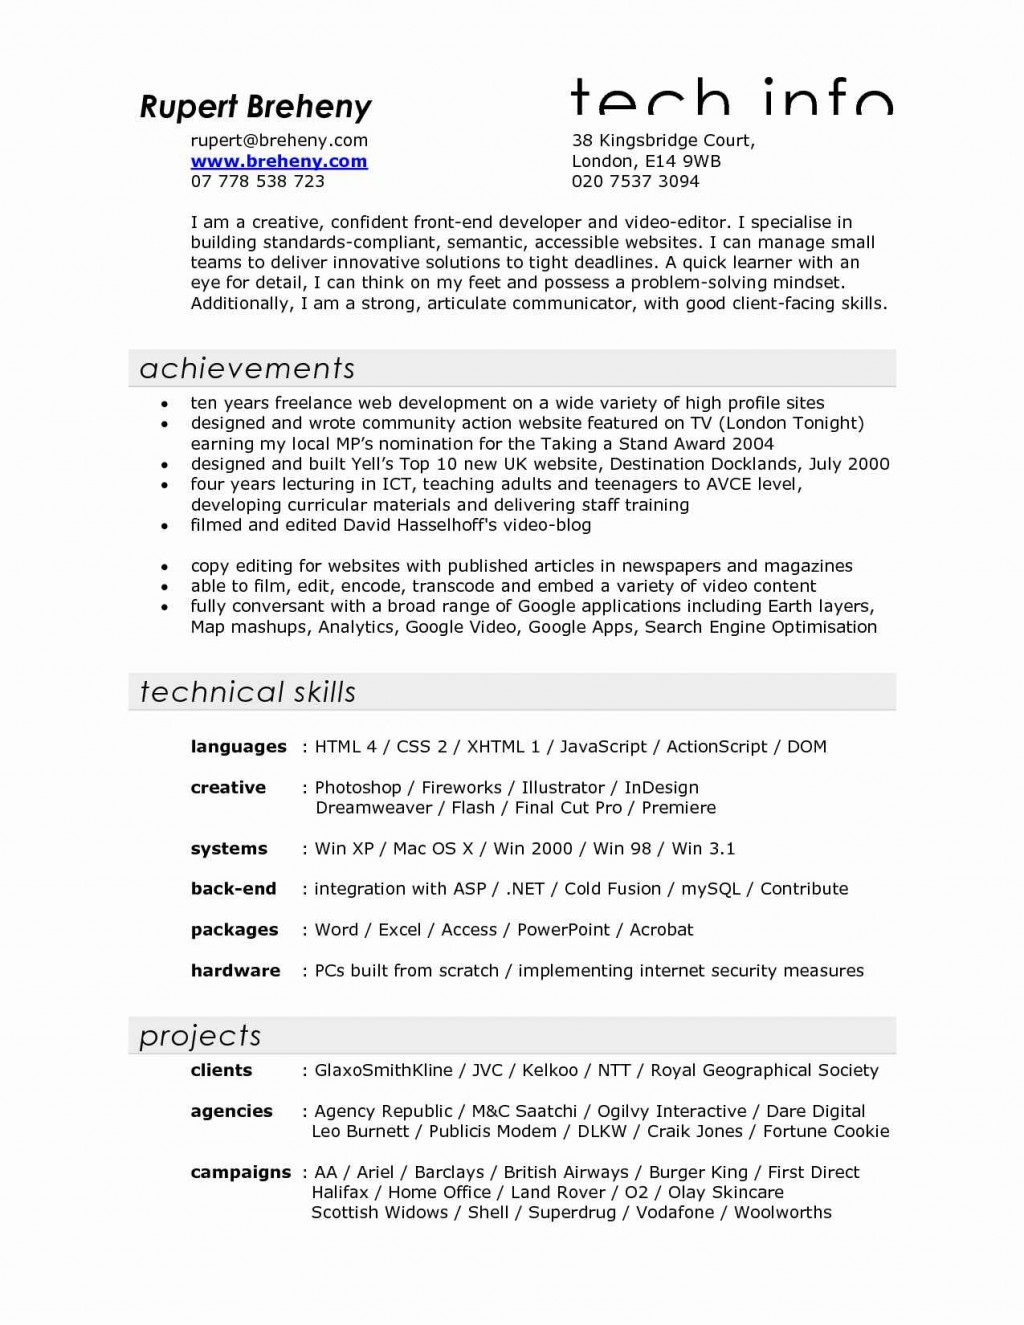 011 Film Director Resume Template Inspirational Gre Awa Analytical Essays For Writing Issue Essay Sample S Breathtaking About Life And Struggles Youth Large